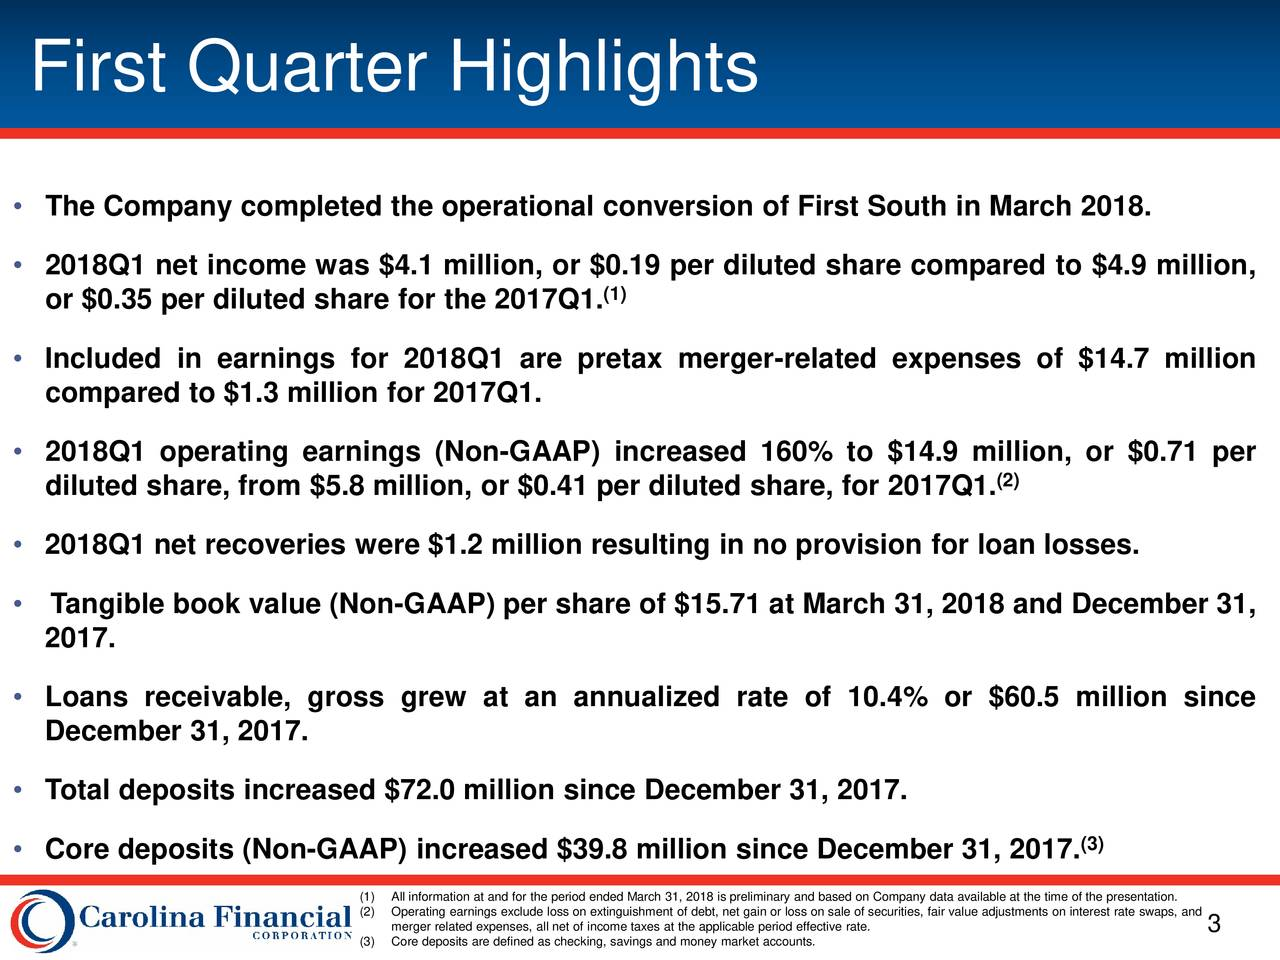 • The Company completed the operational conversion of First South in March 2018. • 2018Q1 net income was $4.1 million, or $0.19 per diluted share compared to $4.9 million, or $0.35 per diluted share for the 2017Q1. (1) • Included in earnings for 2018Q1 are pretax merger-related expenses of $14.7 million compared to $1.3 million for 2017Q1. • 2018Q1 operating earnings (Non-GAAP) increased 160% to $14.9 million, or $0.71 per diluted share, from $5.8 million, or $0.41 per diluted share, for 2017Q1. (2) • 2018Q1 net recoveries were $1.2 million resulting in no provision for loan losses. • Tangible book value (Non-GAAP) per share of $15.71 at March 31, 2018 and December 31, 2017. • Loans receivable, gross grew at an annualized rate of 10.4% or $60.5 million since December 31, 2017. • Total deposits increased $72.0 million since December 31, 2017. (3) • Core deposits (Non-GAAP) increased $39.8 million since December 31, 2017. (1)All information at and for the period ended March 31, 2018 is preliminary and based on Company data available at the time of the presentation. (2)Operating earnings exclude loss on extinguishment of debt, net gain or loss on sale of securities, fair value adjustments on interest rate swaps, and (3)Core deposits are defined as checking, savings and money market accounts. 3ffective rate.